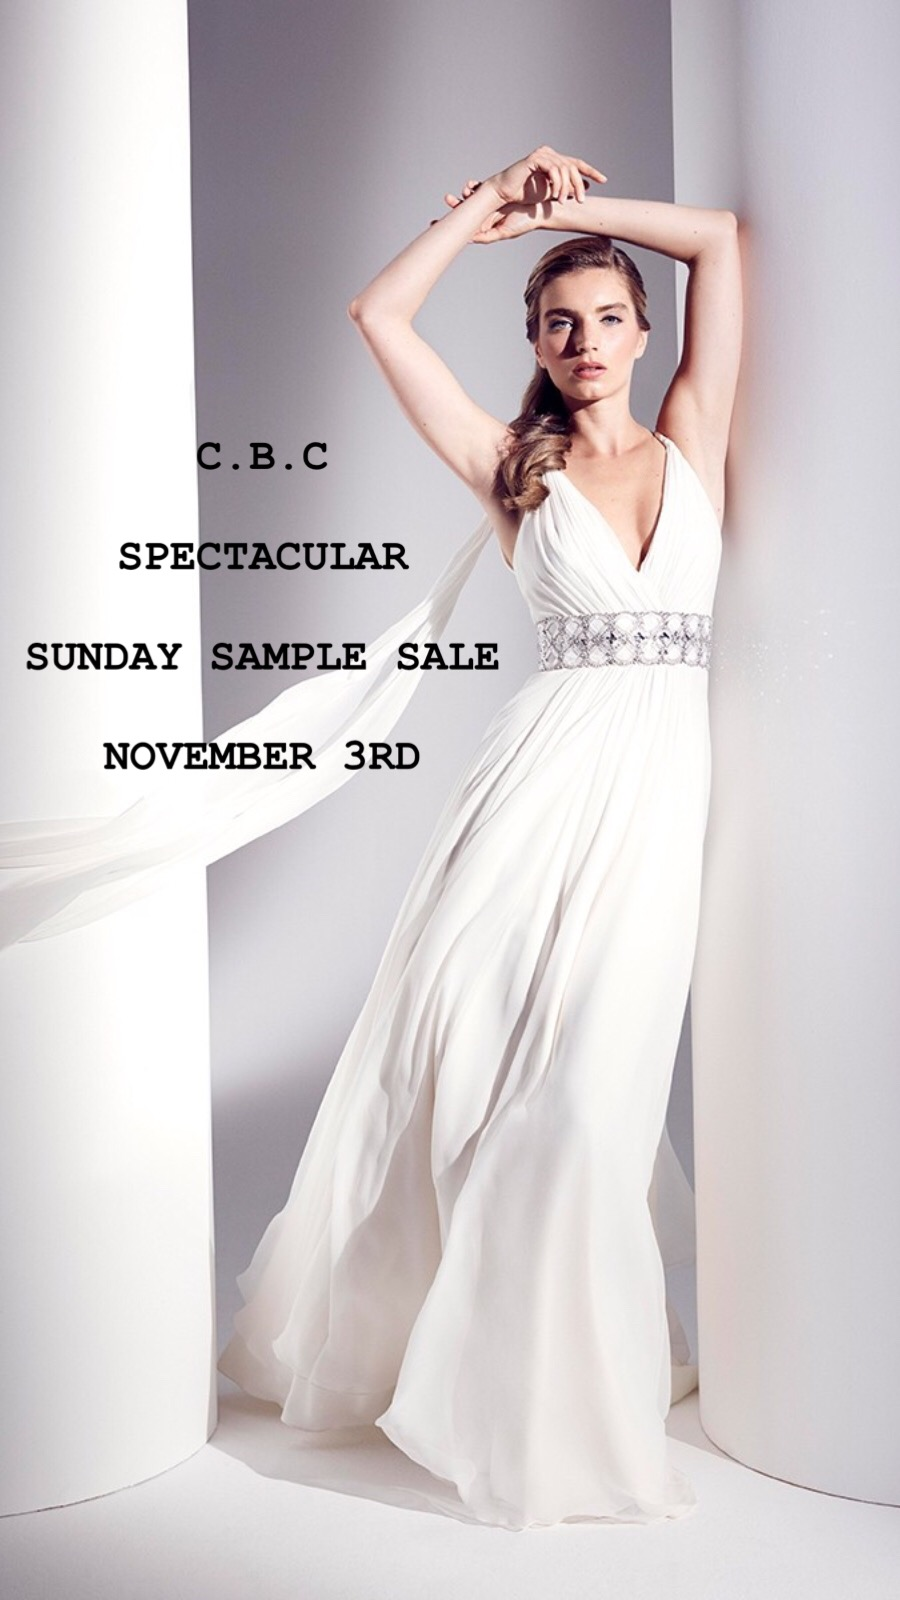 Spectacular Sunday Sample Sale 3rd November 2019